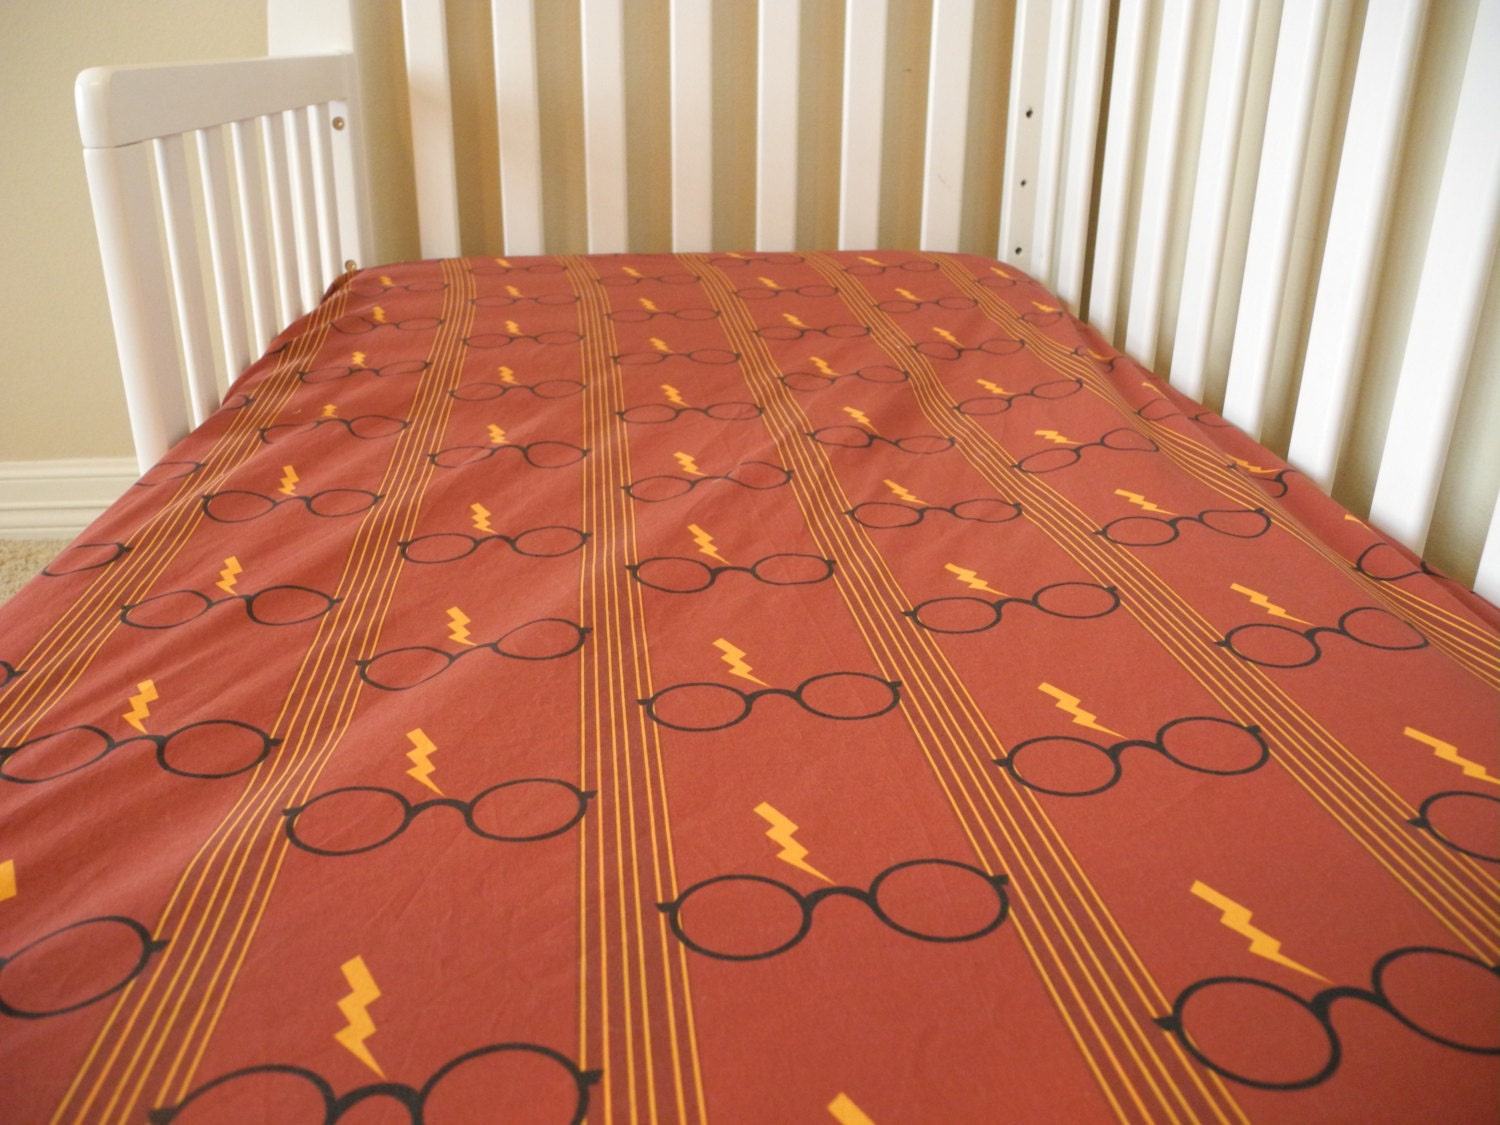 Fitted crib sheet harry potter red crib sheet baby bedding - Harry potter crib set ...